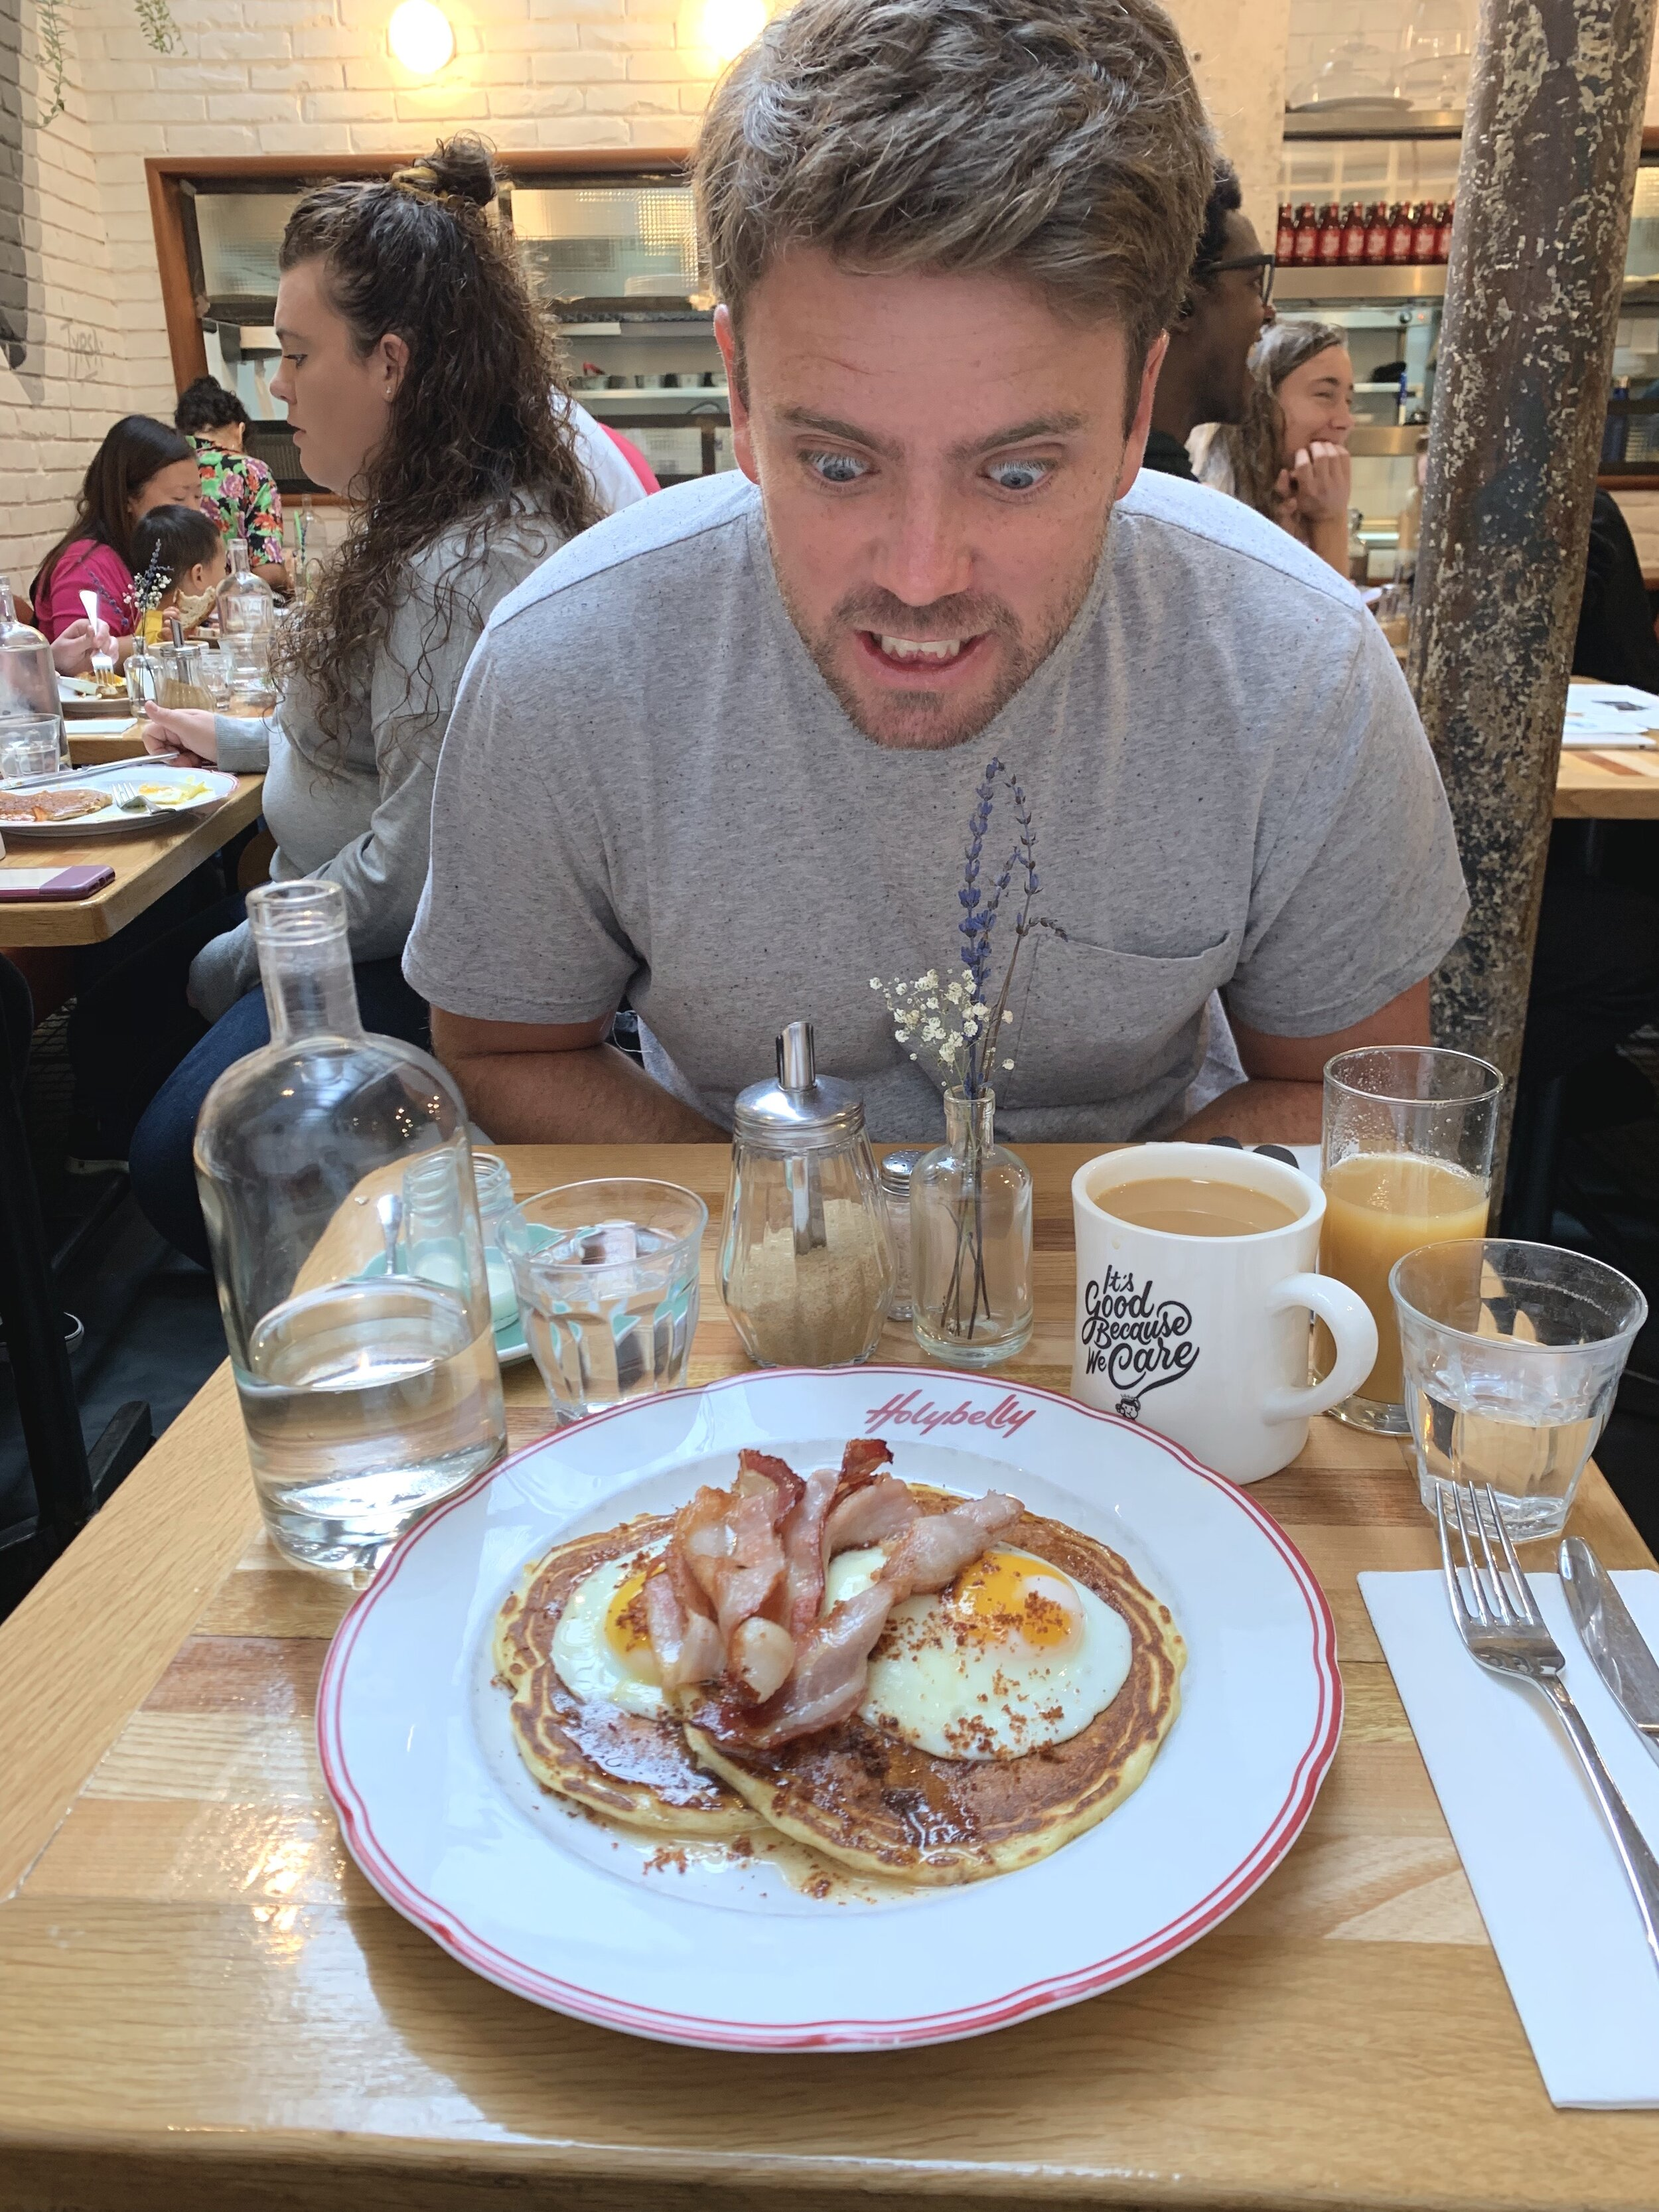 Not sure what it is about Holybelly. These pancakes had the PERFECT amount of syrup balanced with delicious bacon and eggs. We hope to be back some day soon!